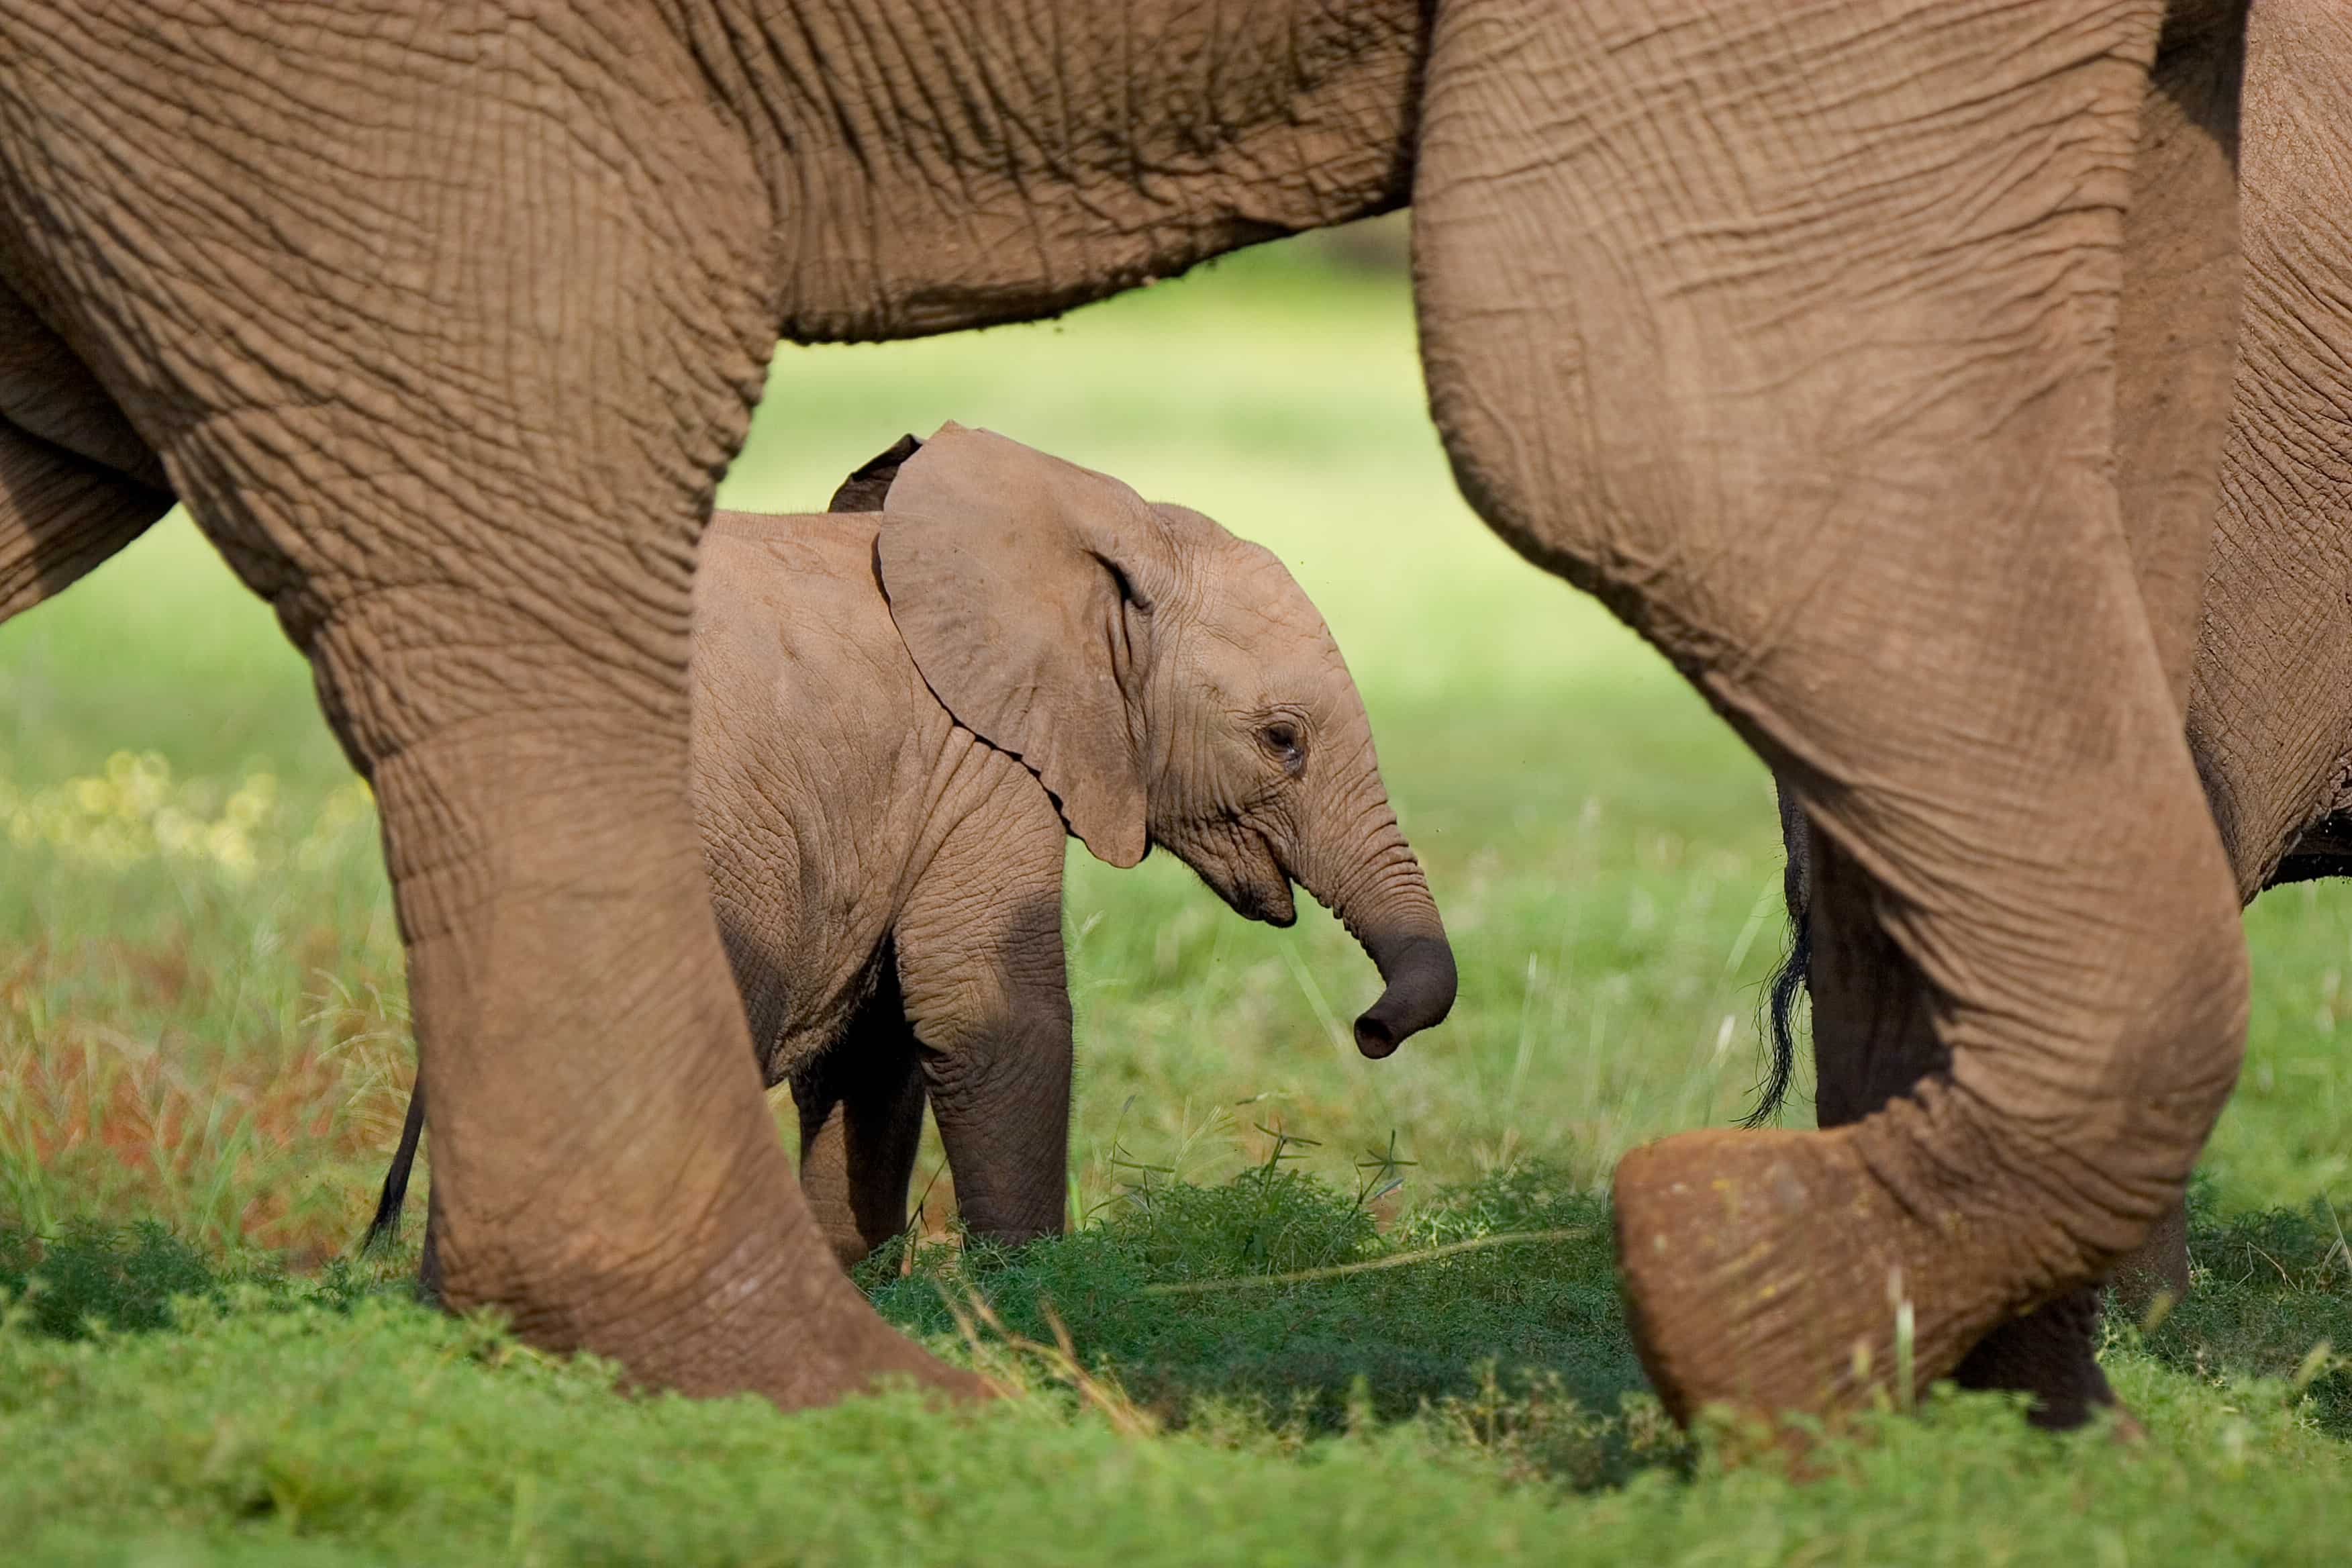 Elephant calf and its mother